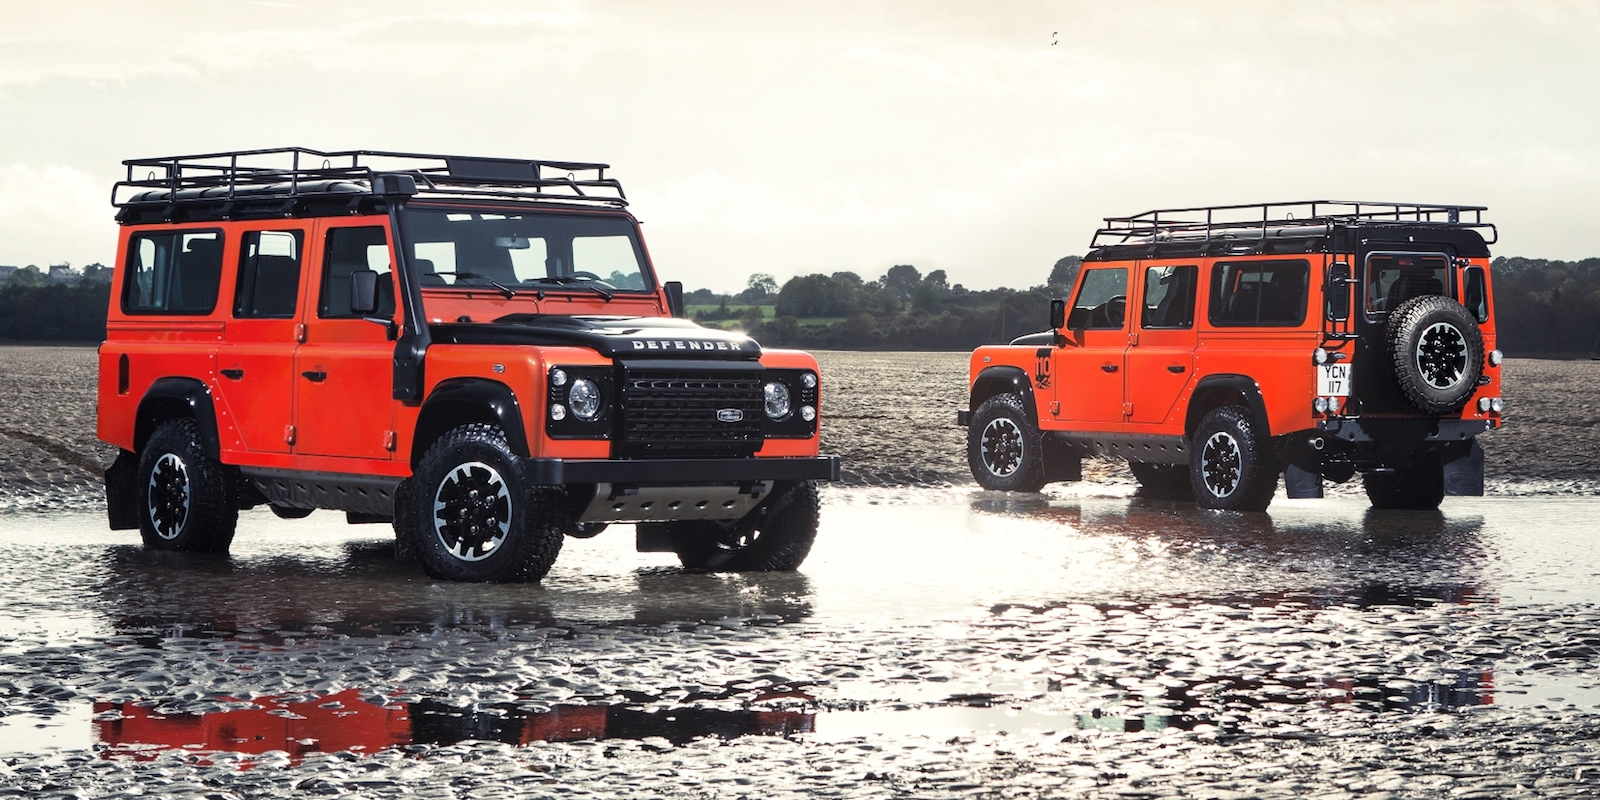 2018 land rover defender svx svautobiography models under consideration photos 1 of 3. Black Bedroom Furniture Sets. Home Design Ideas